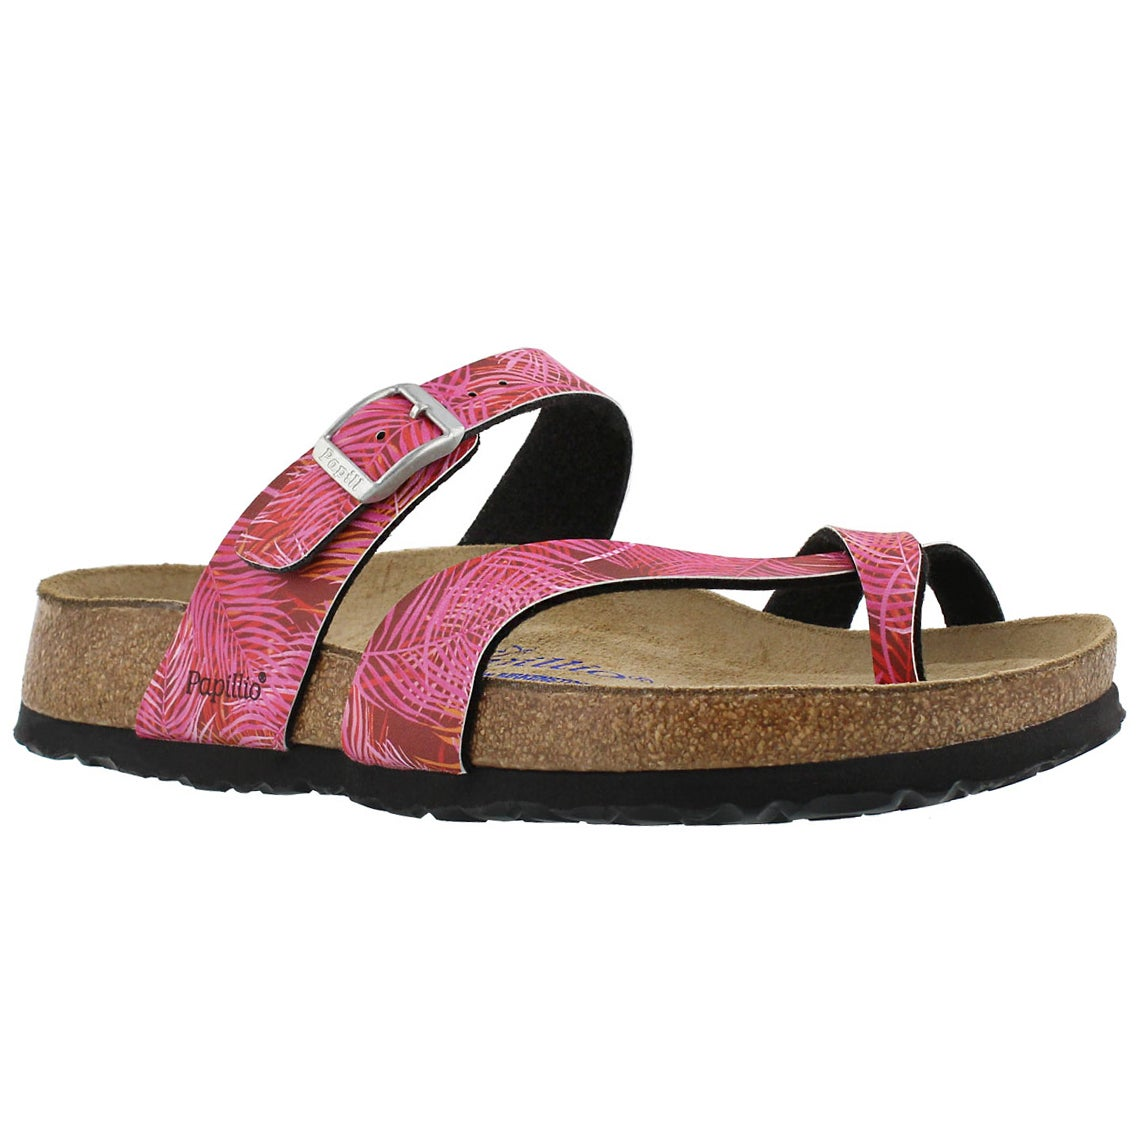 Women's TABORA tropical leaf pink sandals